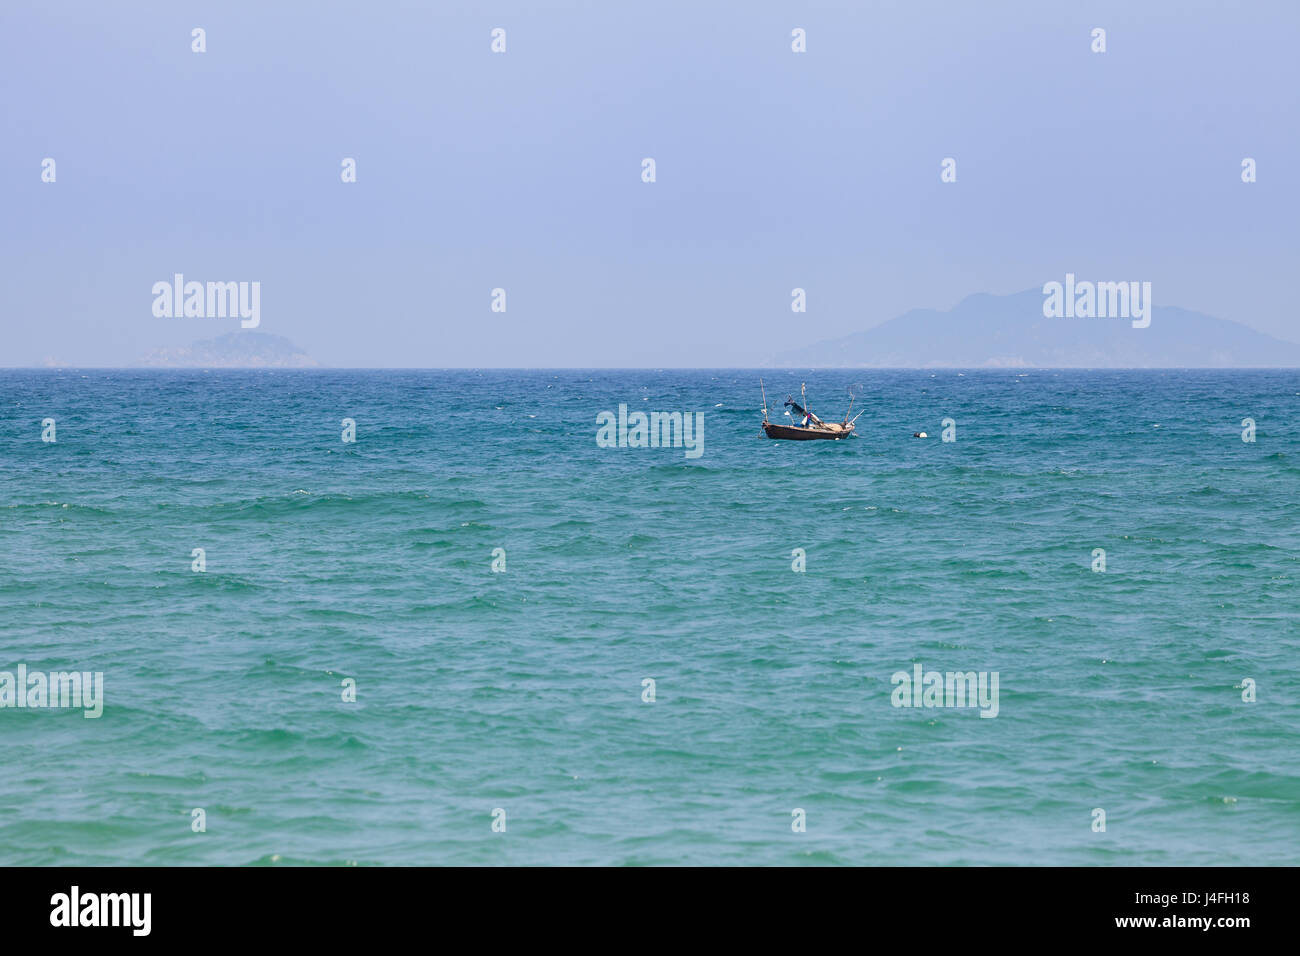 Fishing boat on the Soutch China Sea, Vietnam - Stock Image